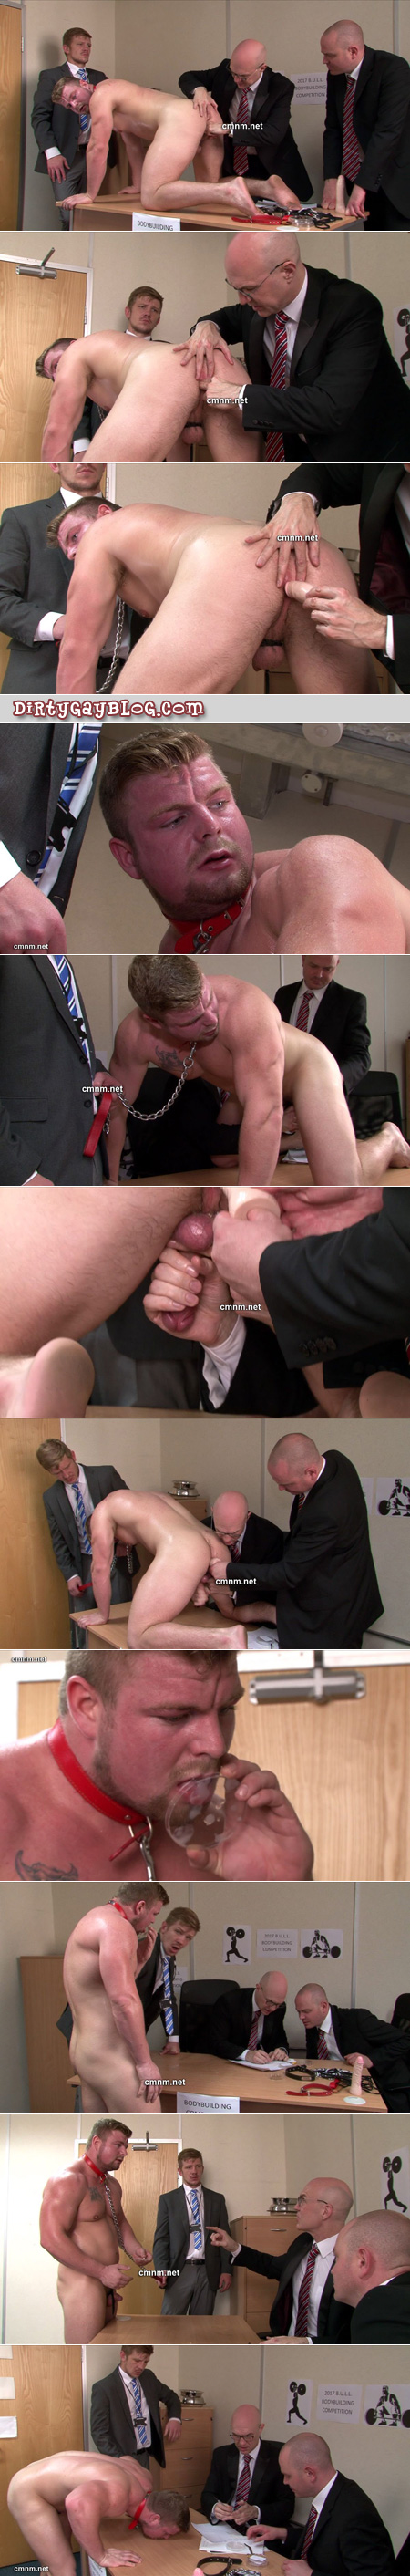 Male bodybuilder groped by men in suits, milked and forced to eat his cum.